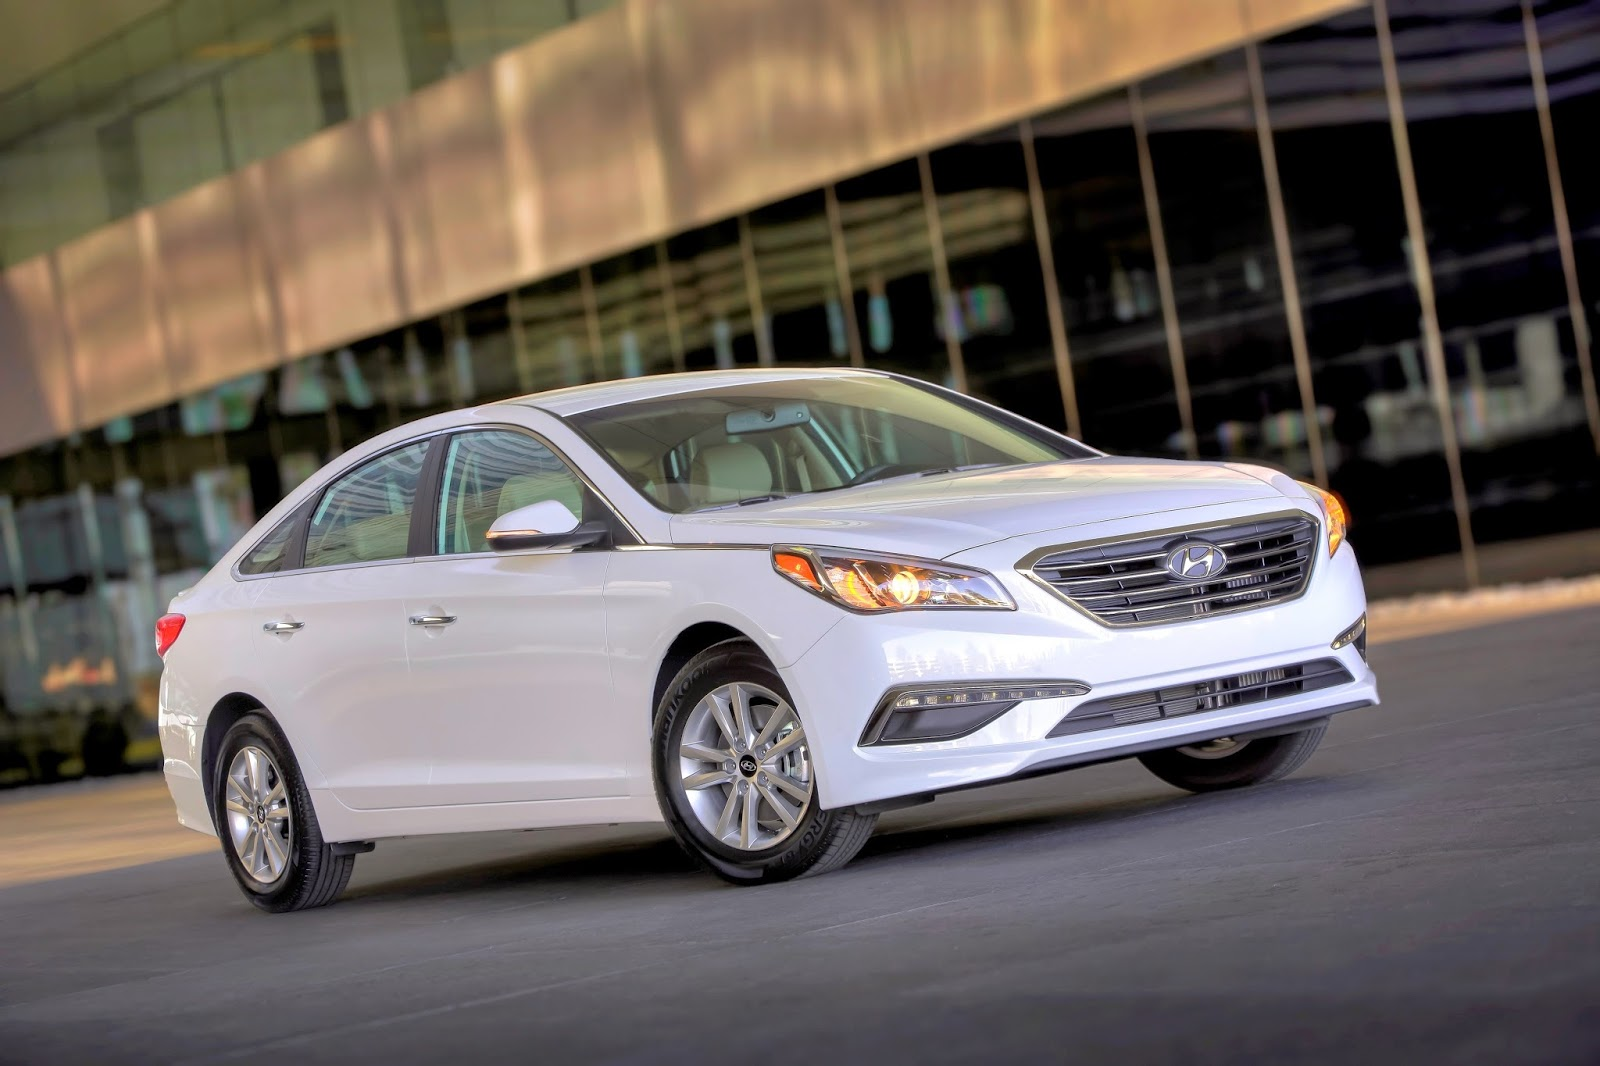 Front 3/4 view of 2015 Hyundai Sonata Eco